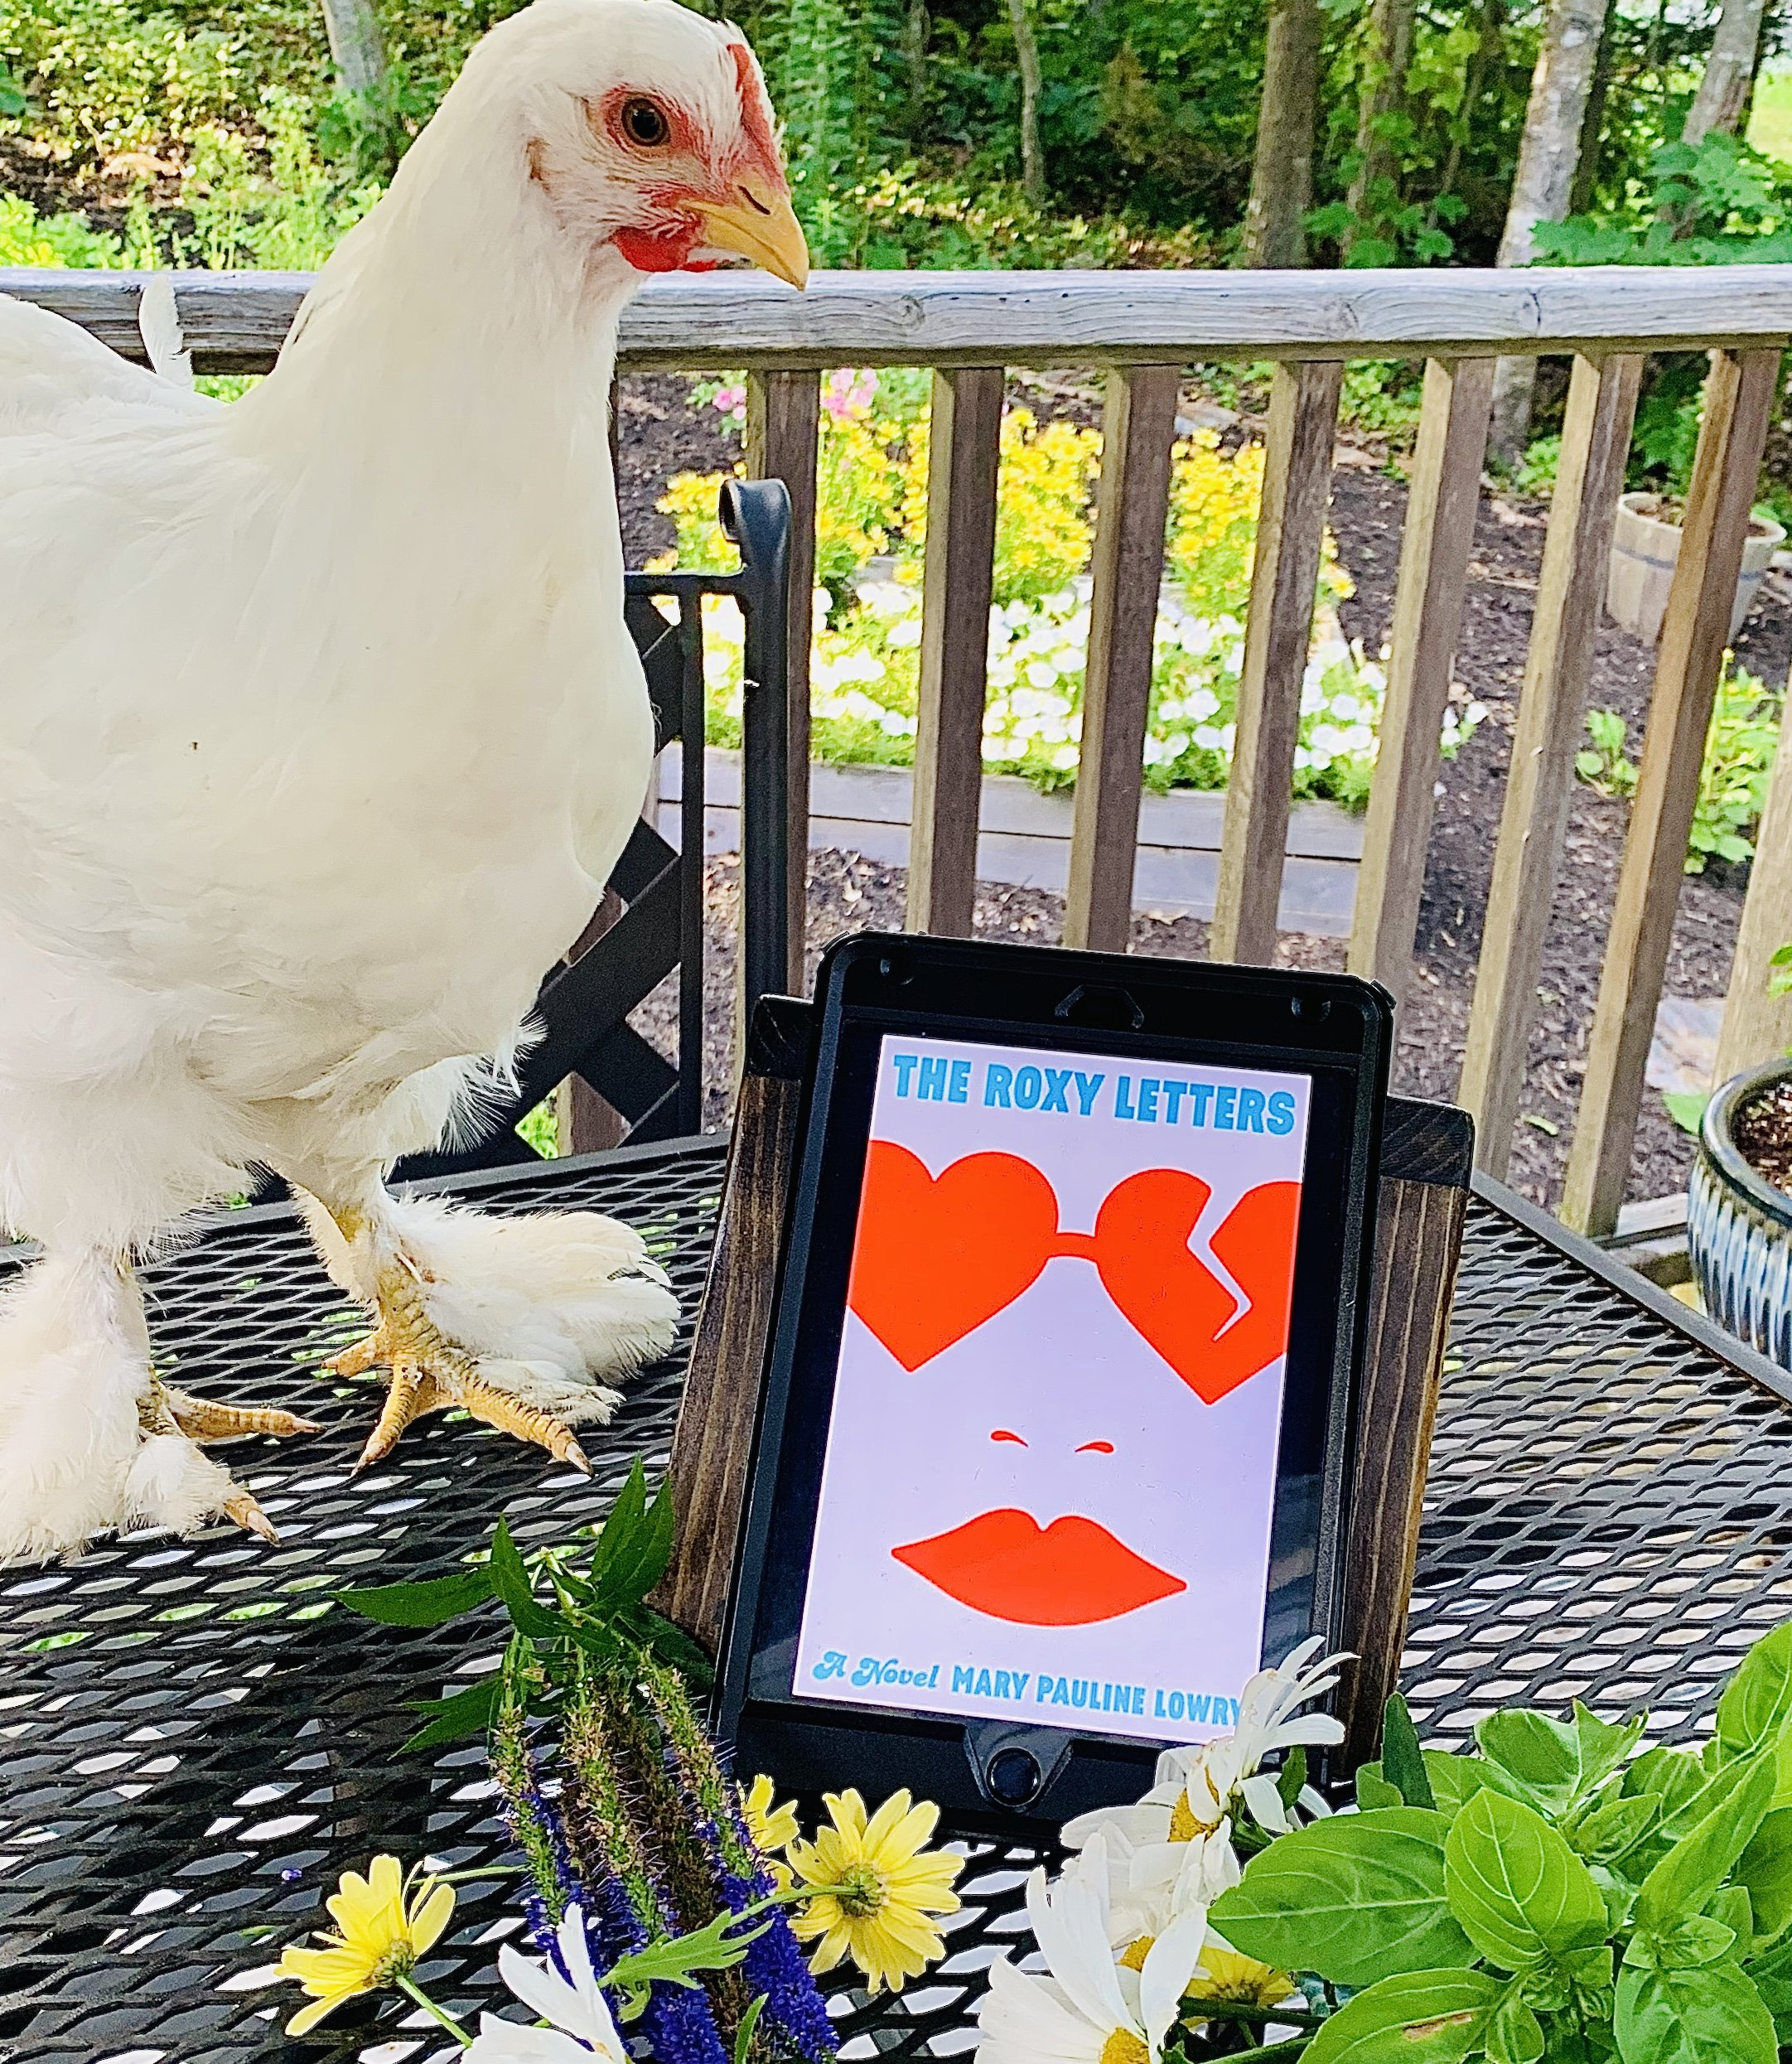 The Roxy Letters Beauty shot with a chicken